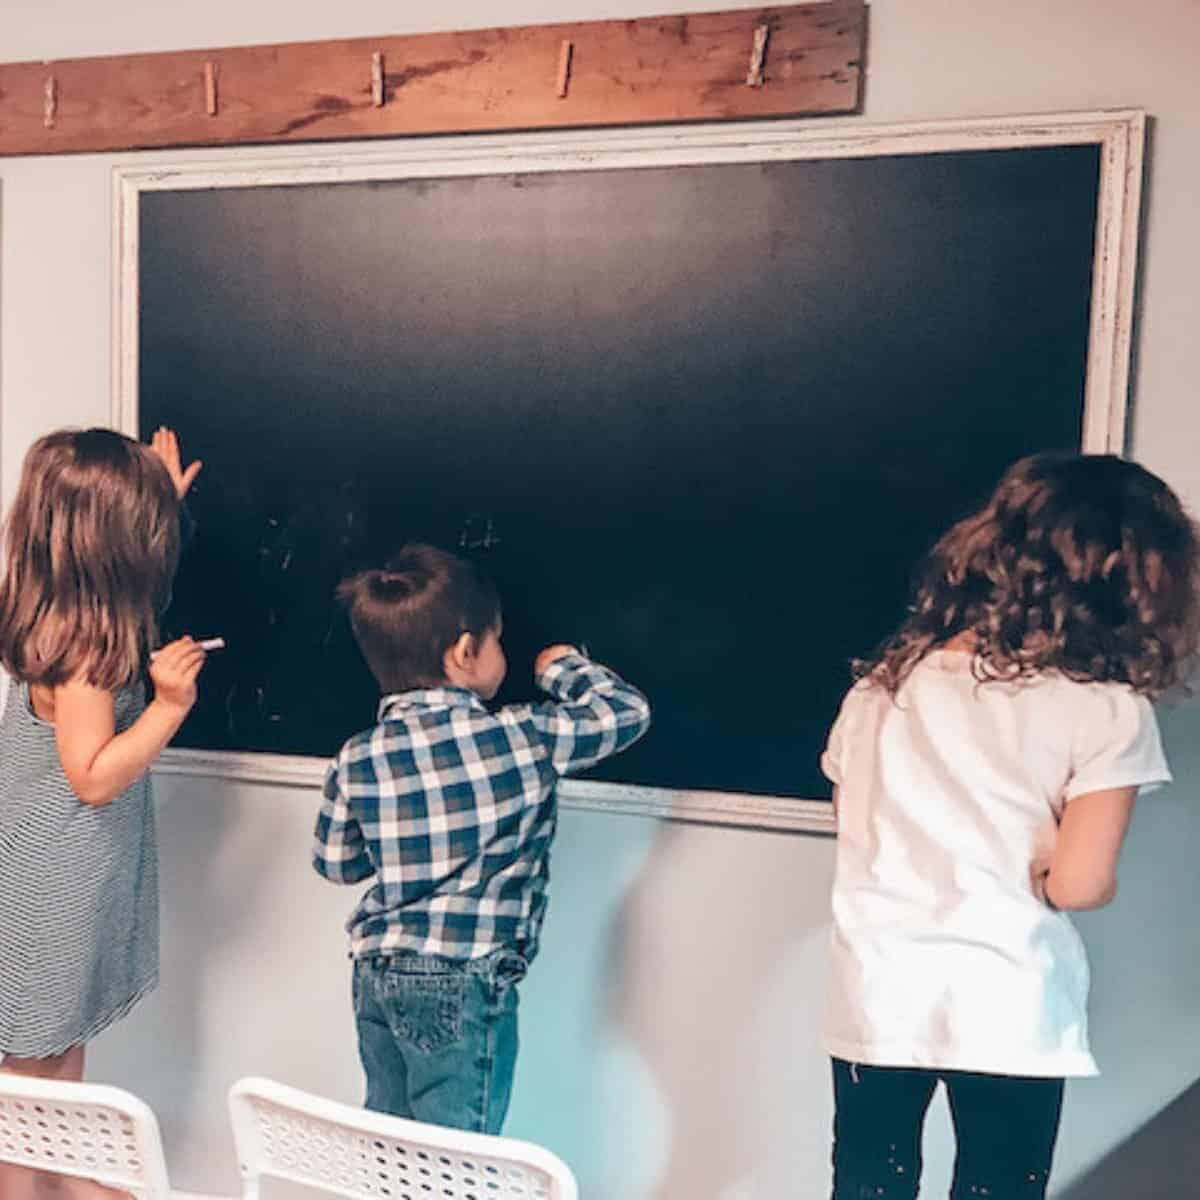 children writing on a chalkboard